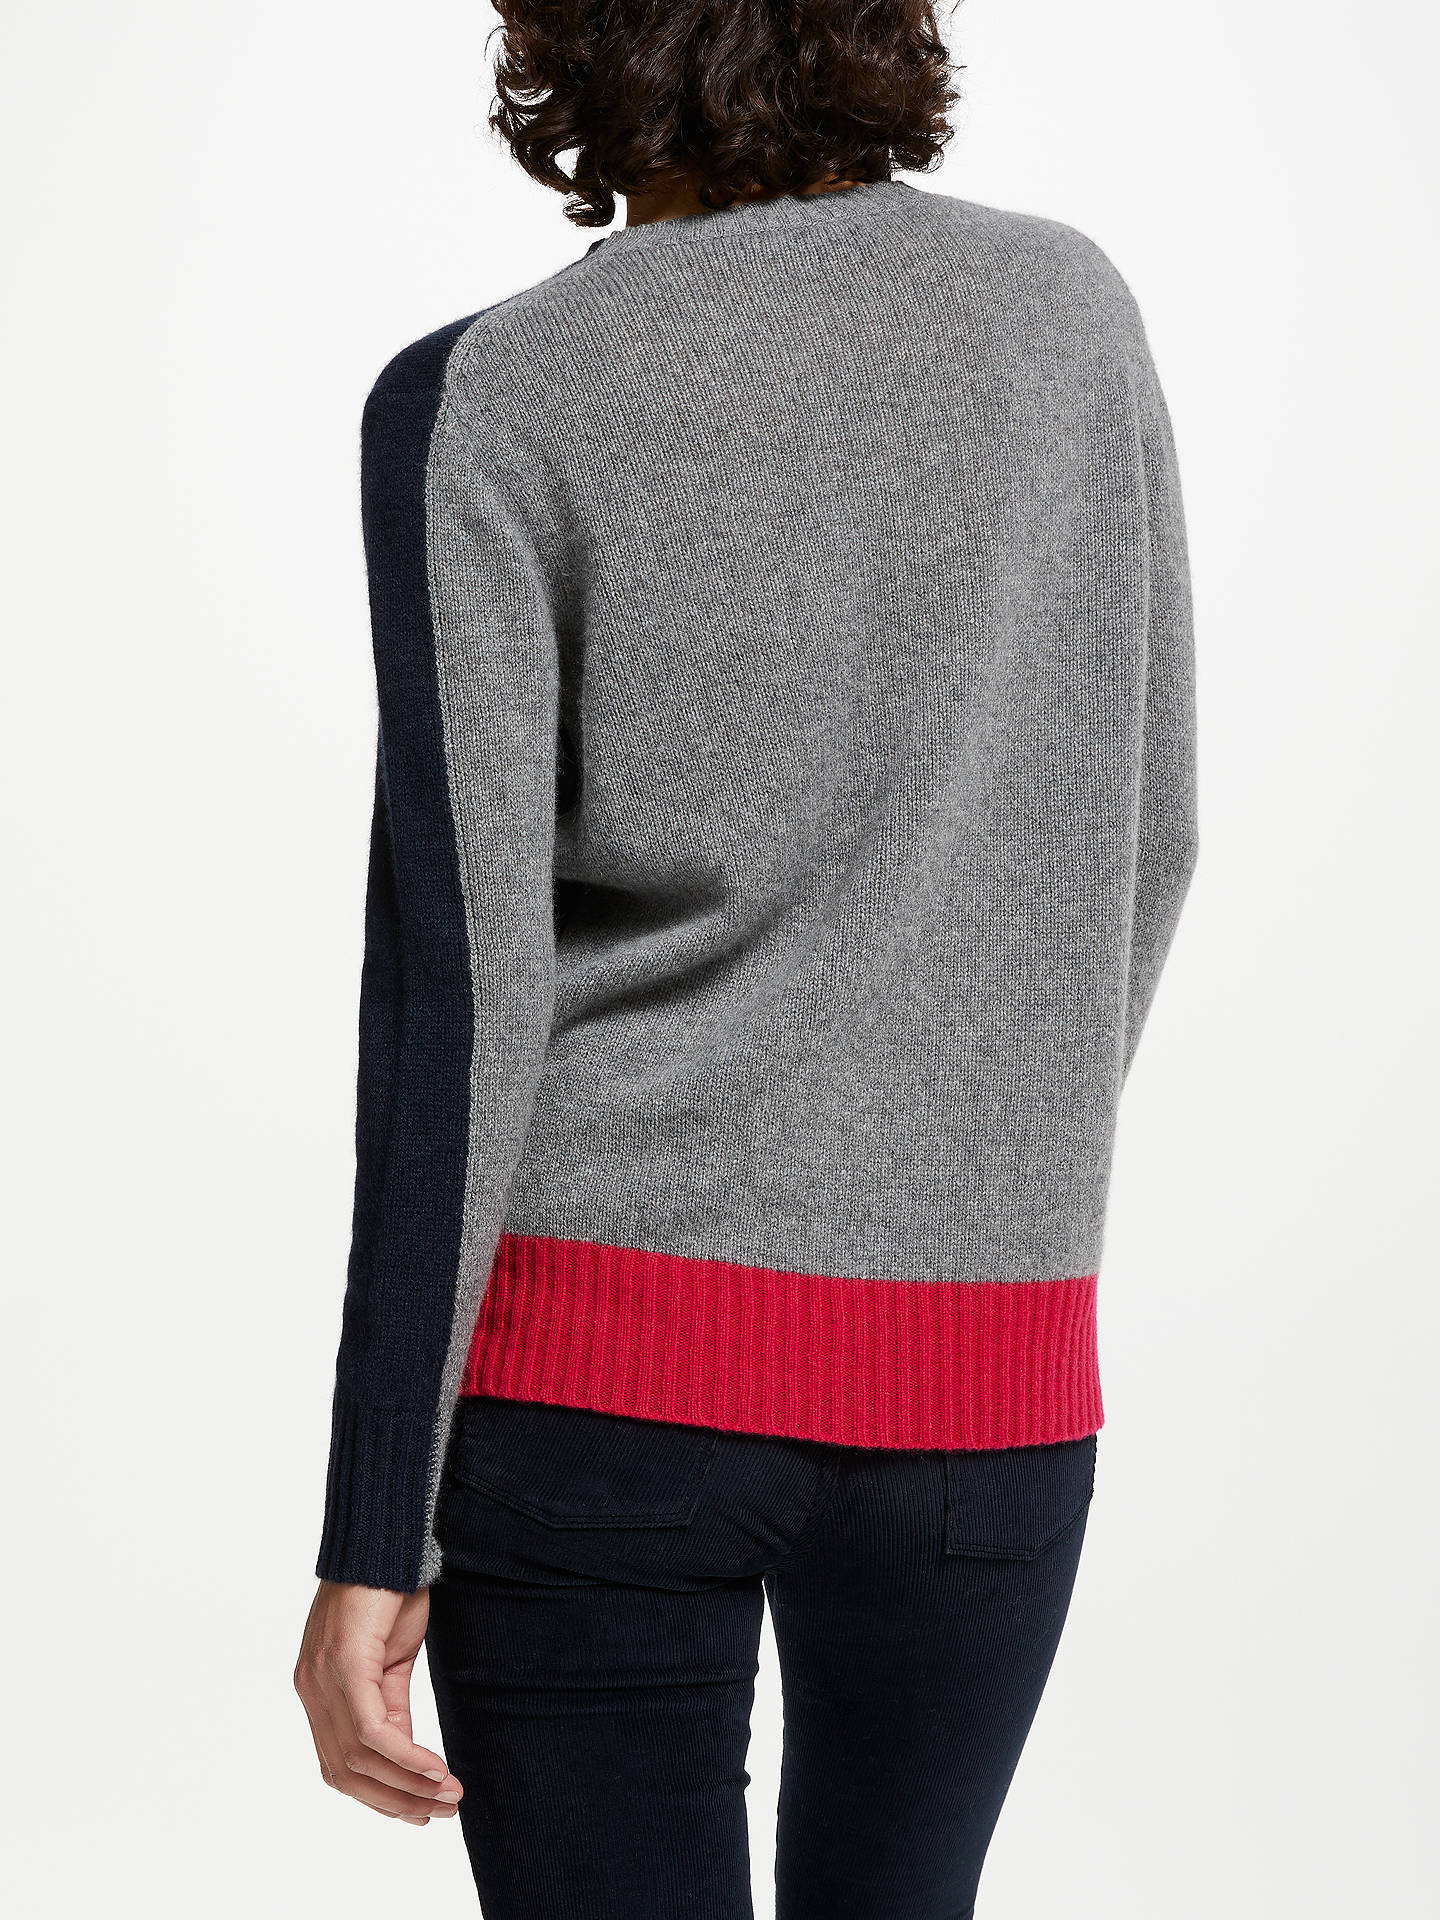 Buy 360 Sweater Franny Colour Block Cashmere Jumper, Navy/Heather Grey/Magenta, S Online at johnlewis.com